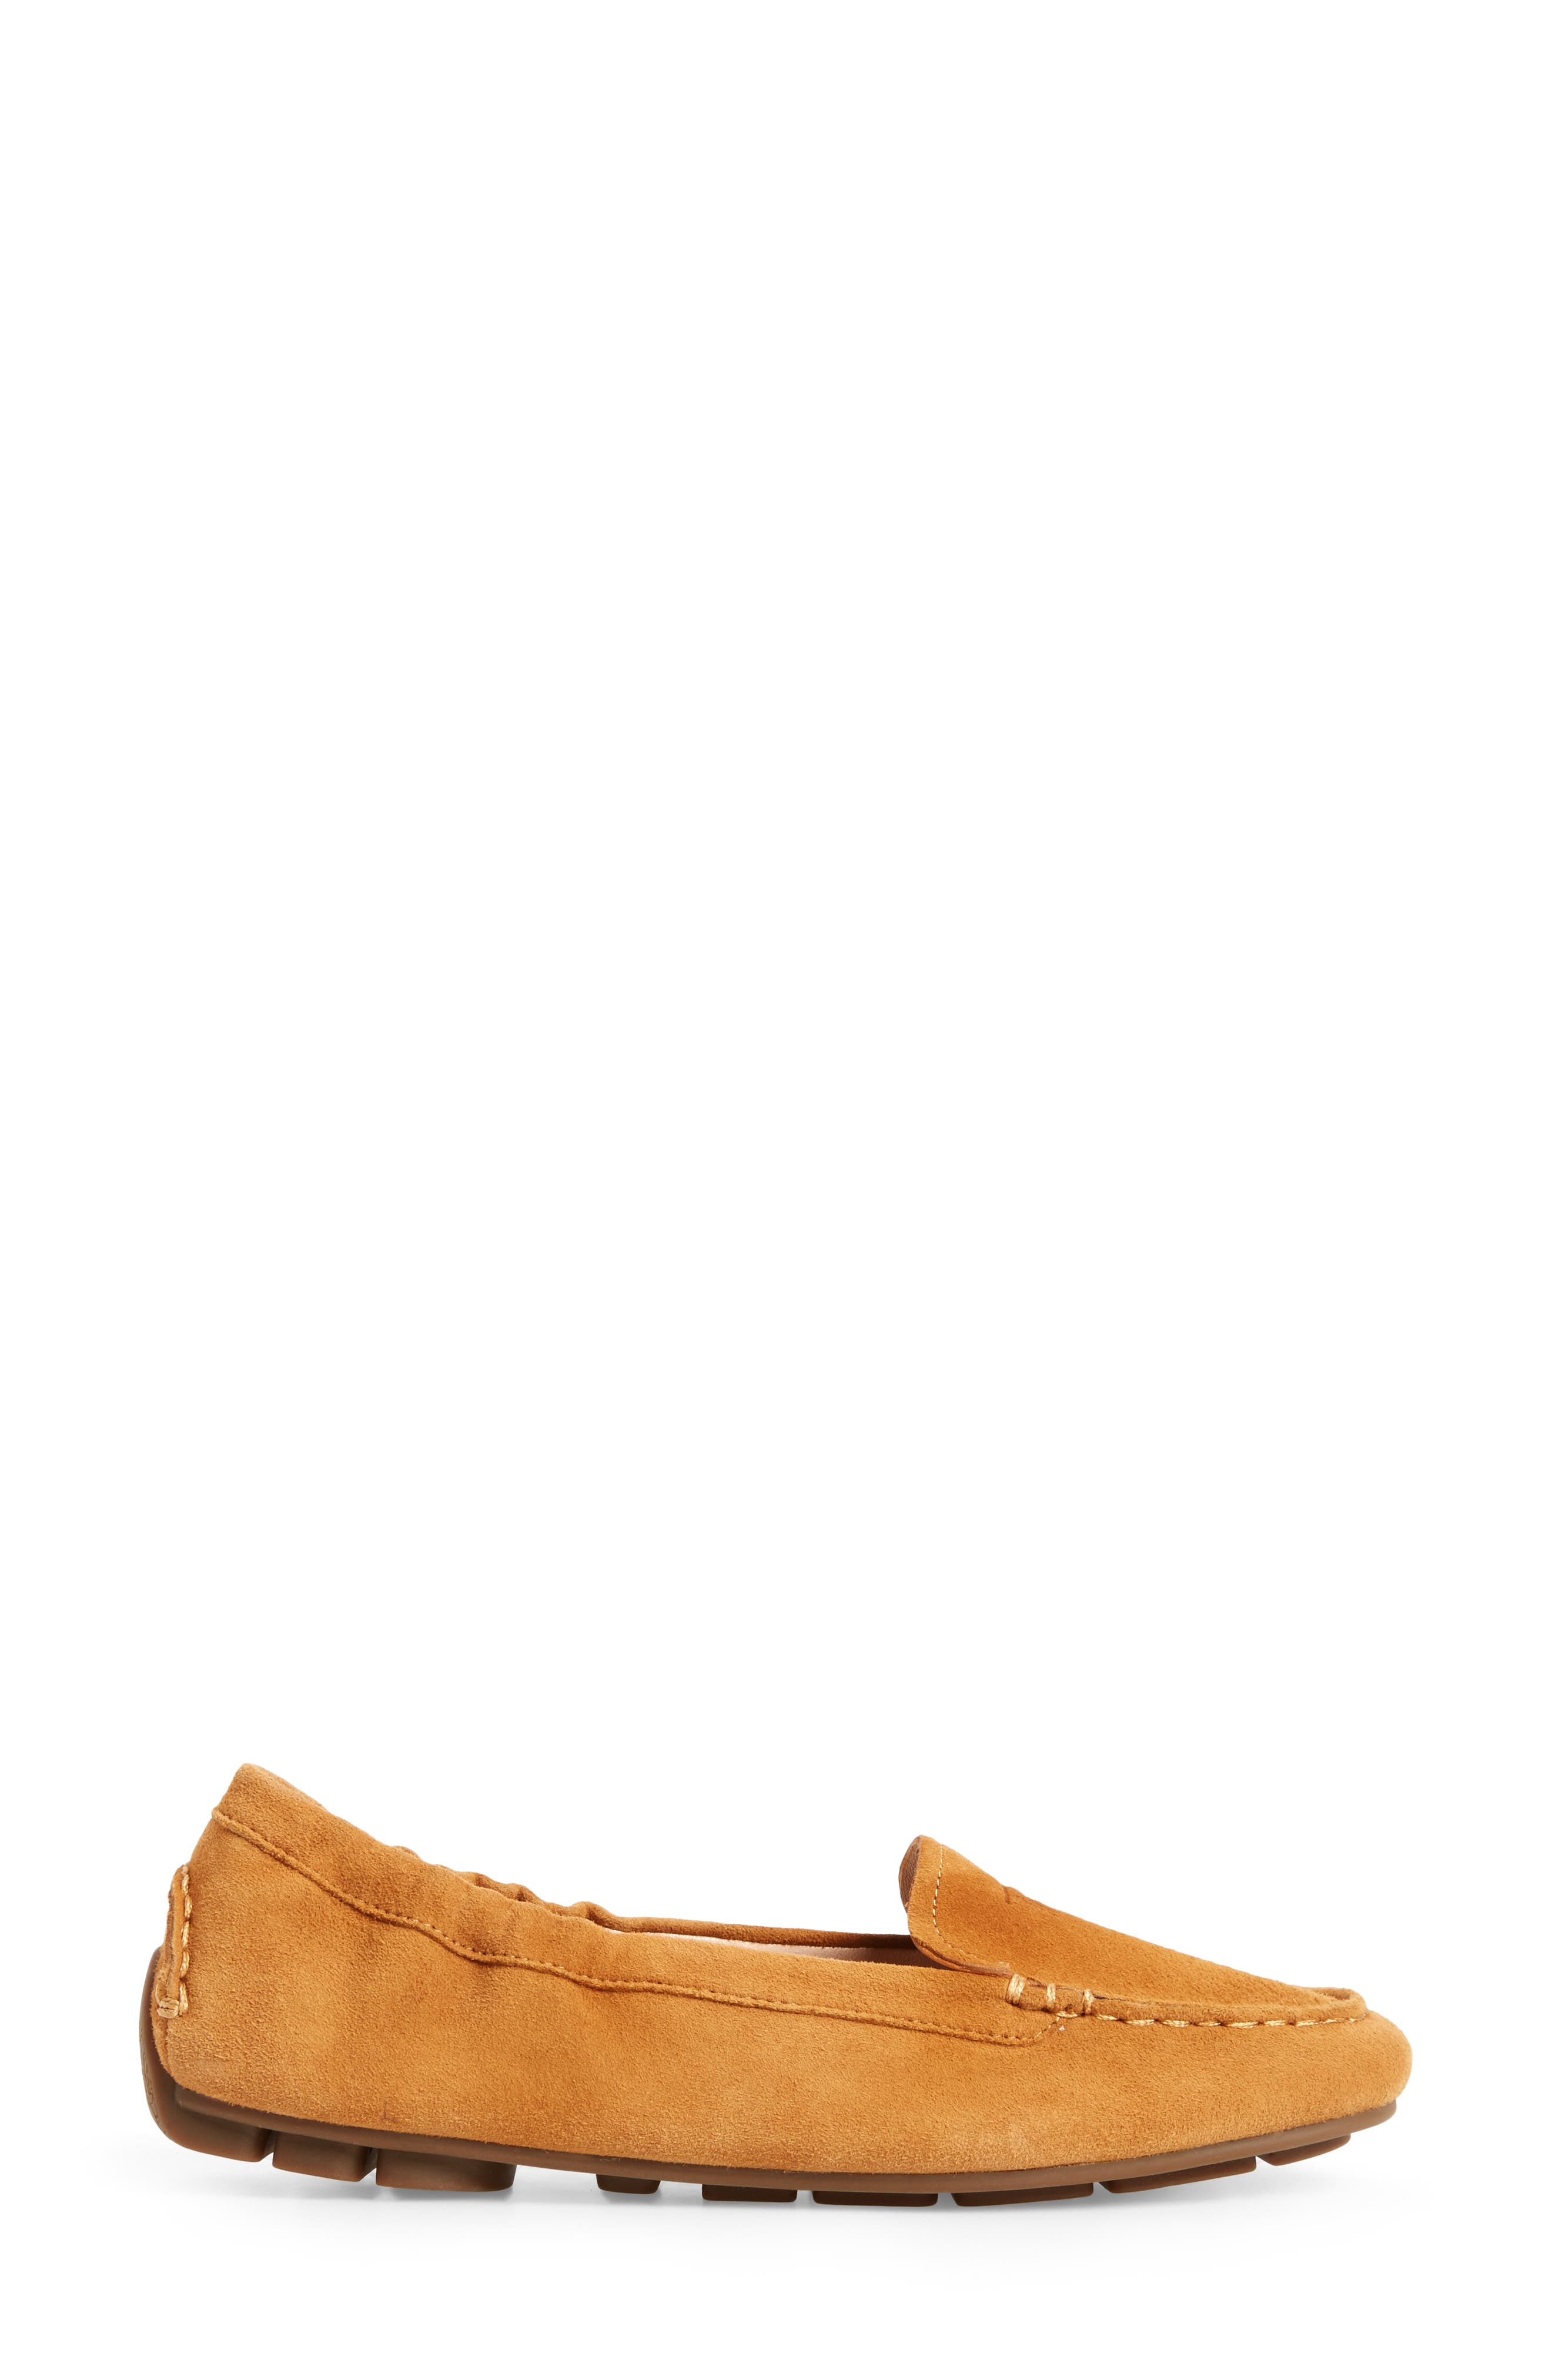 Kristine Loafer,                             Alternate thumbnail 3, color,                             Cuoio Suede